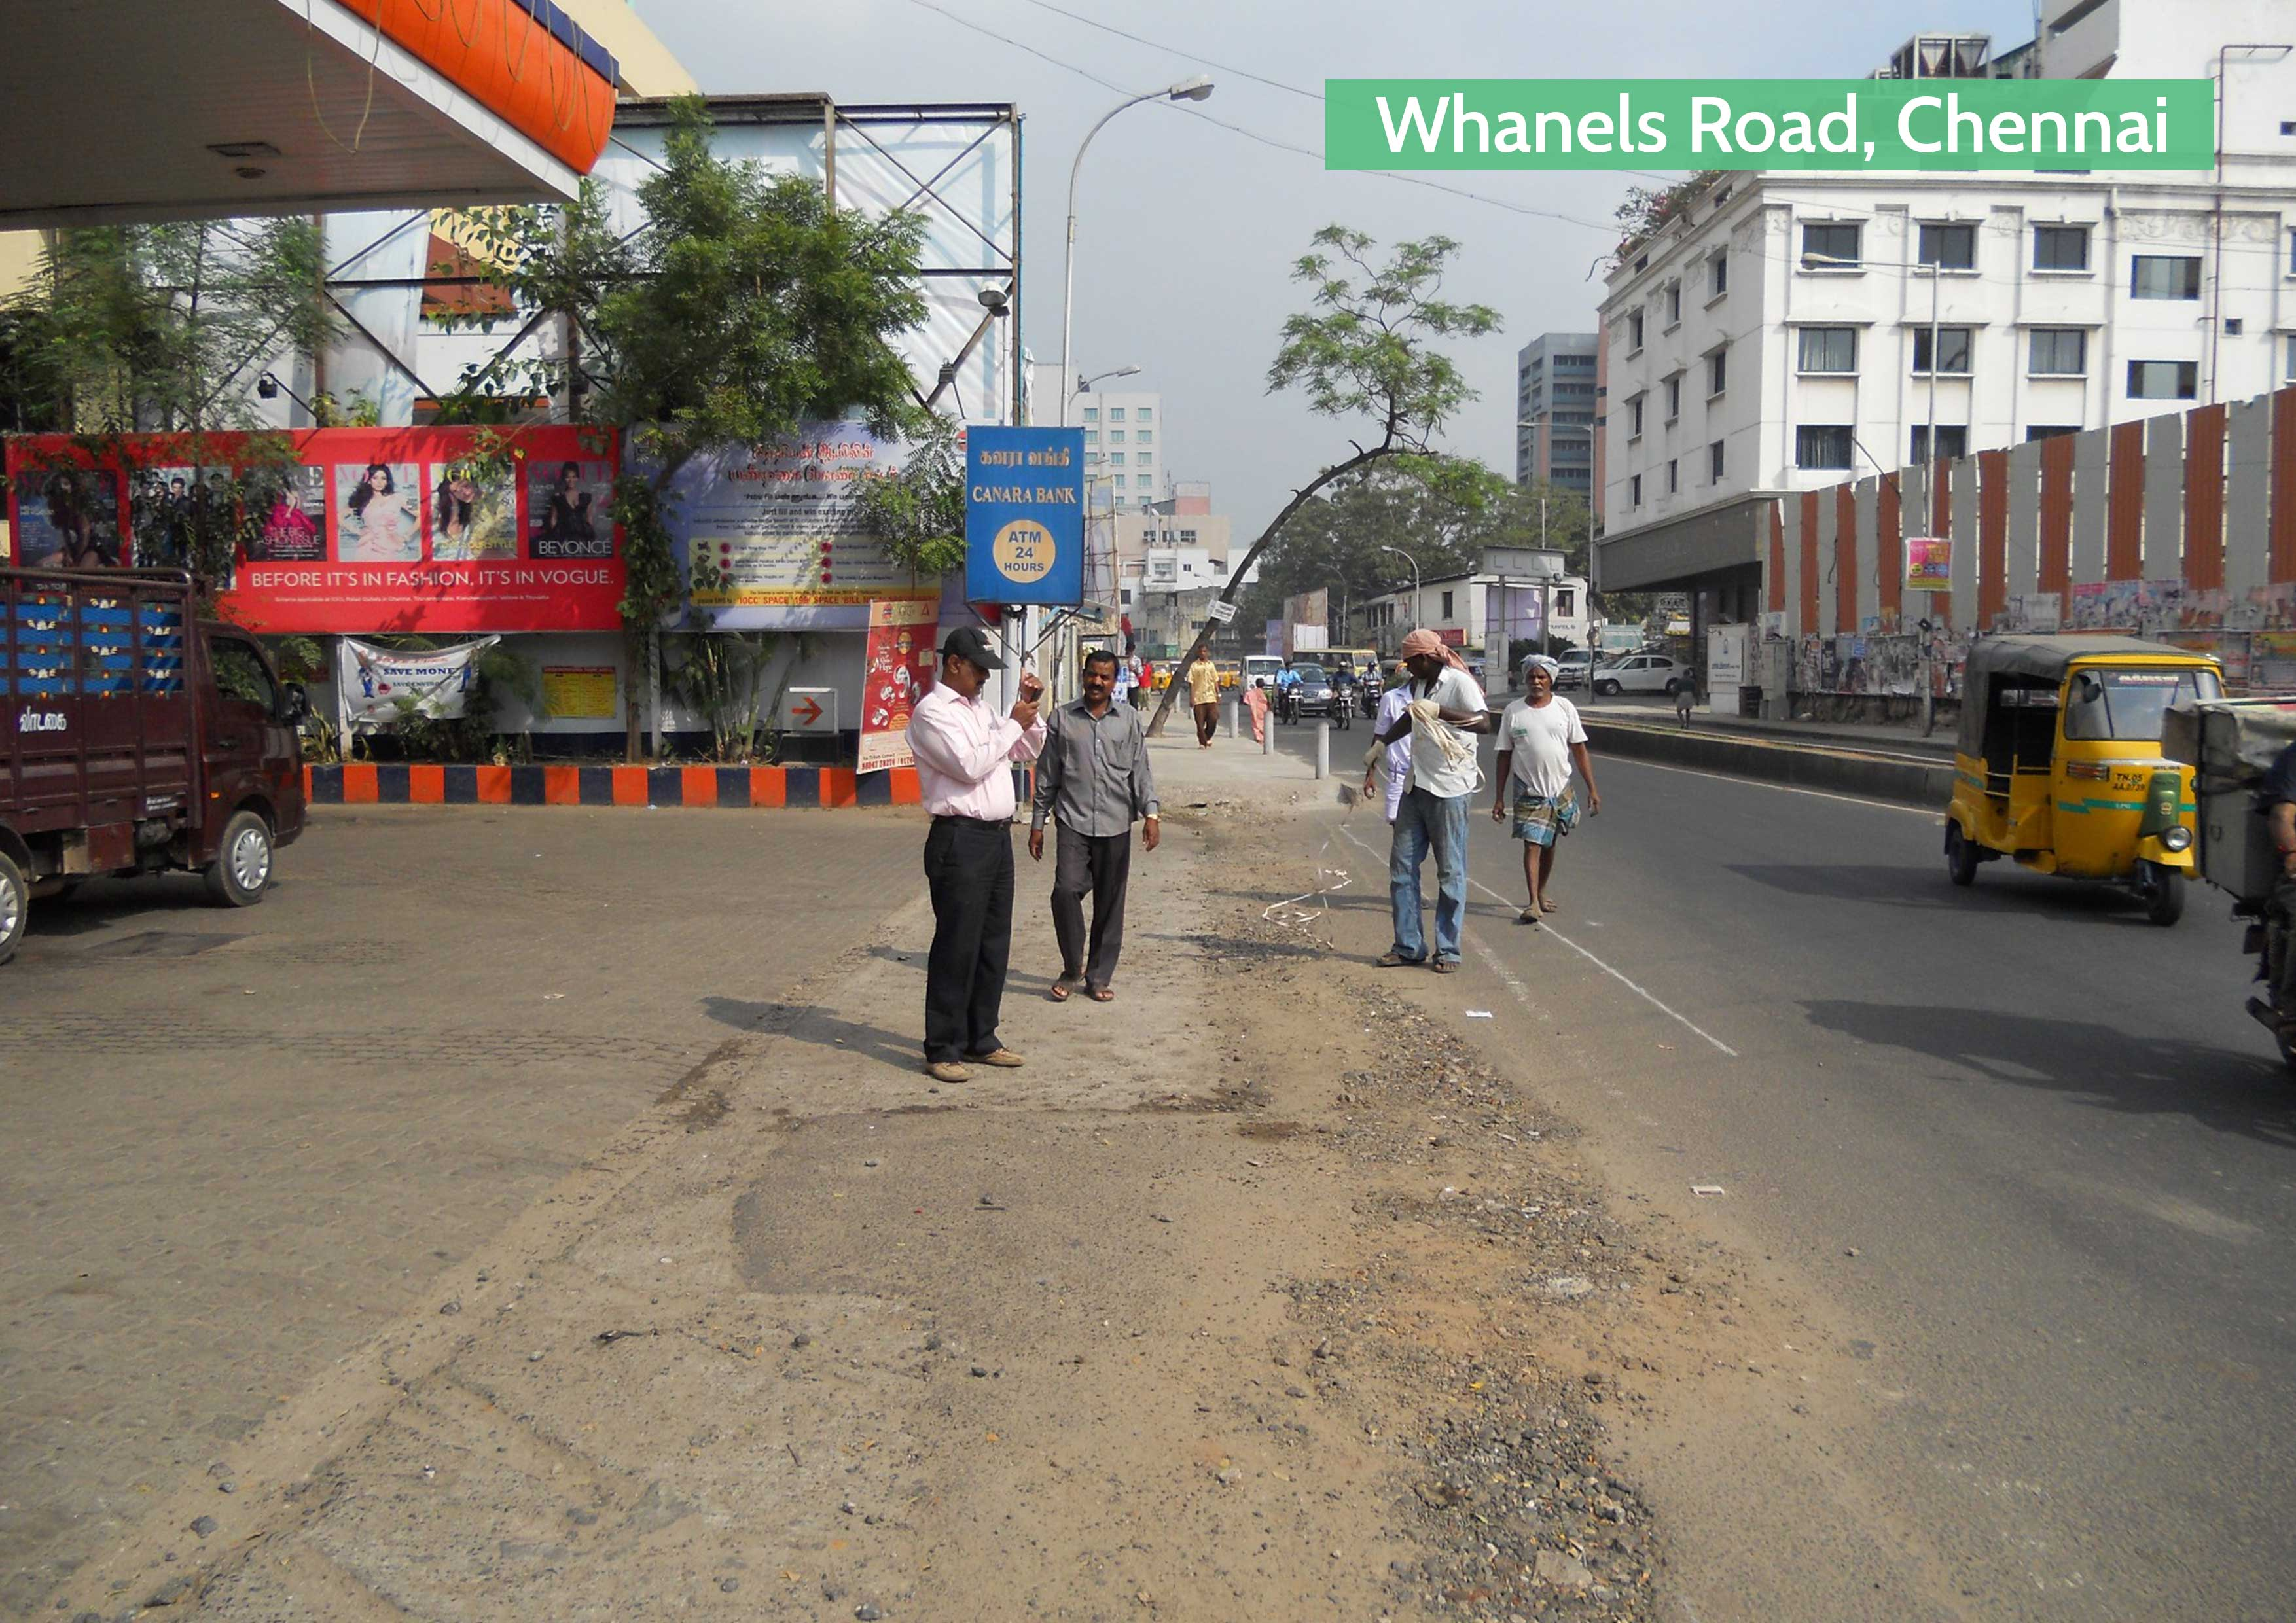 Before-Whanels Road, Chennai